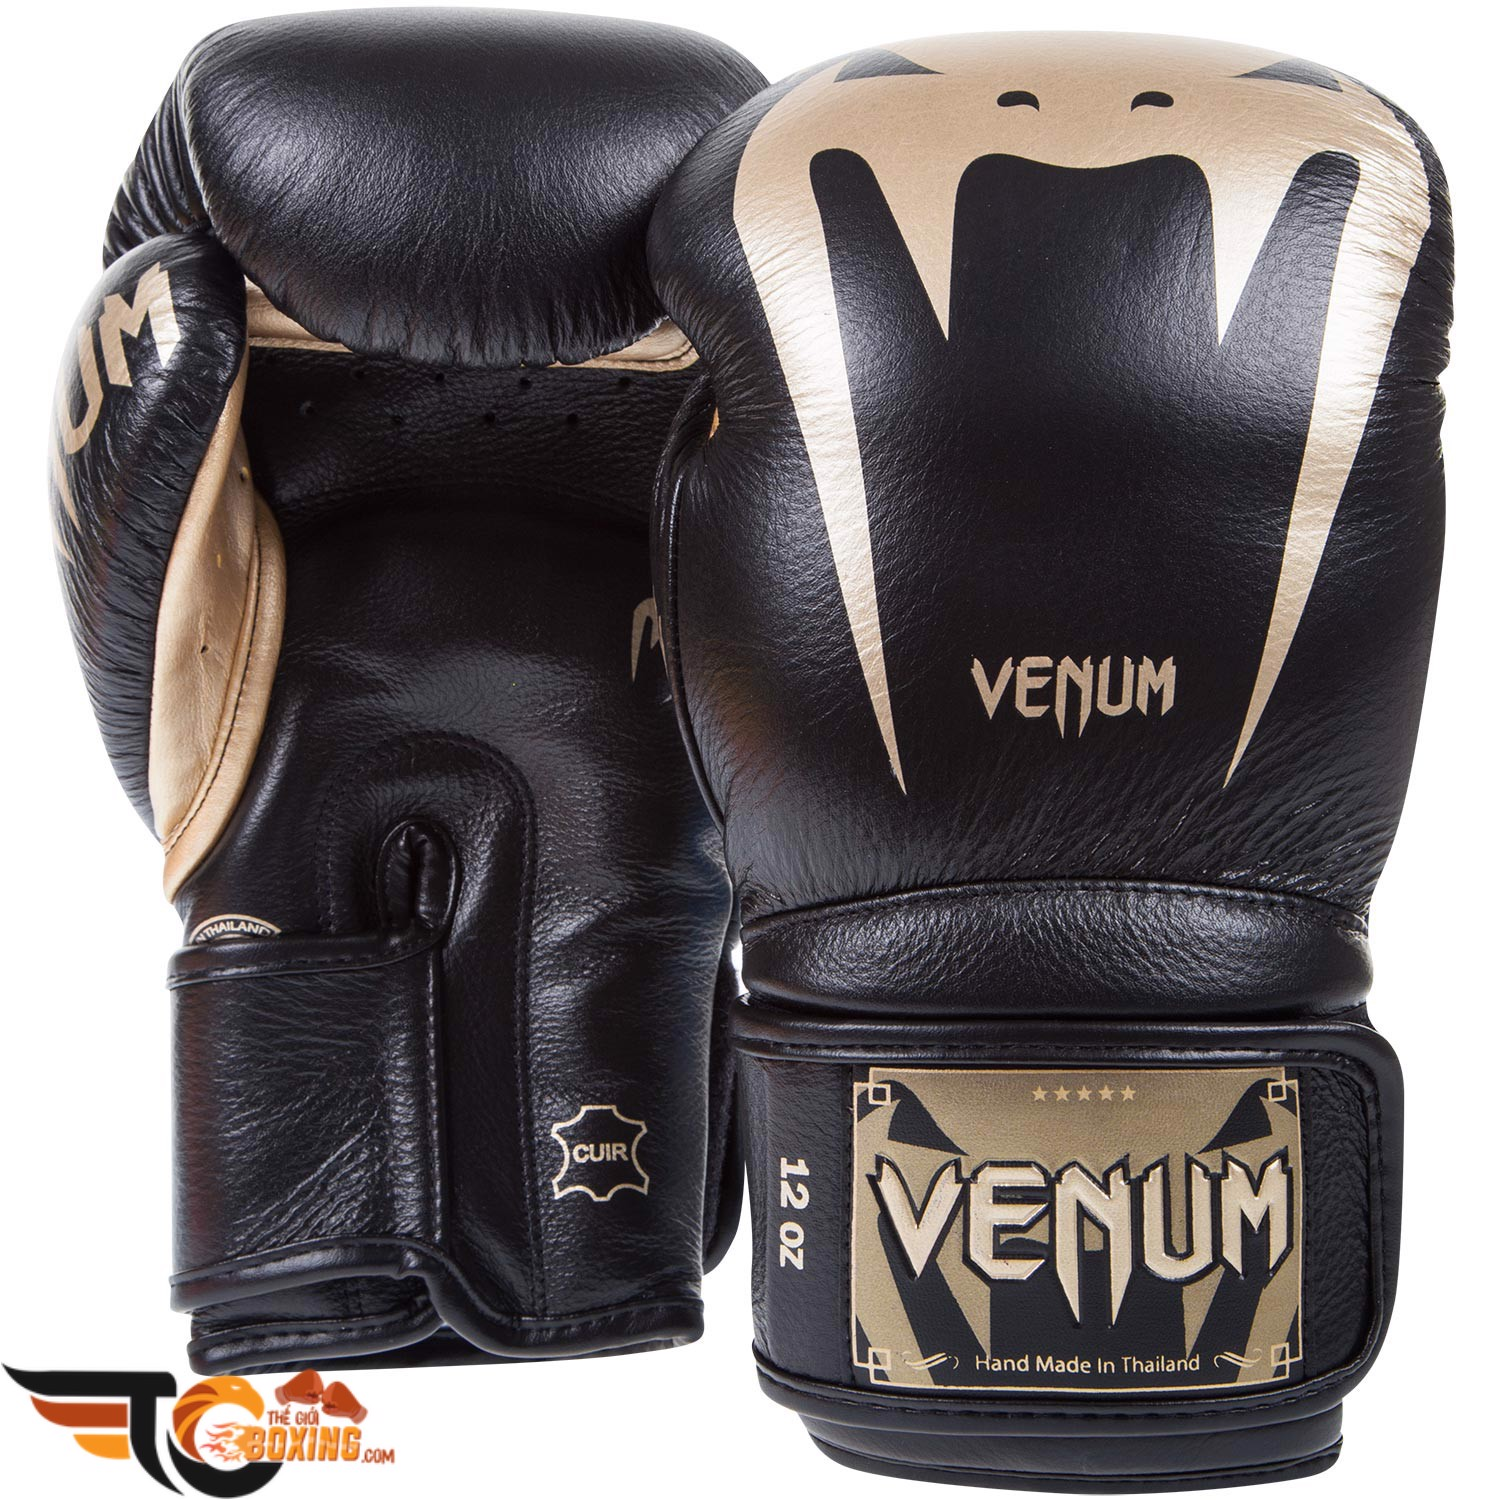 Găng tay boxing VENUM GIANT 3.0 Leather Sparring Boxing Gloves